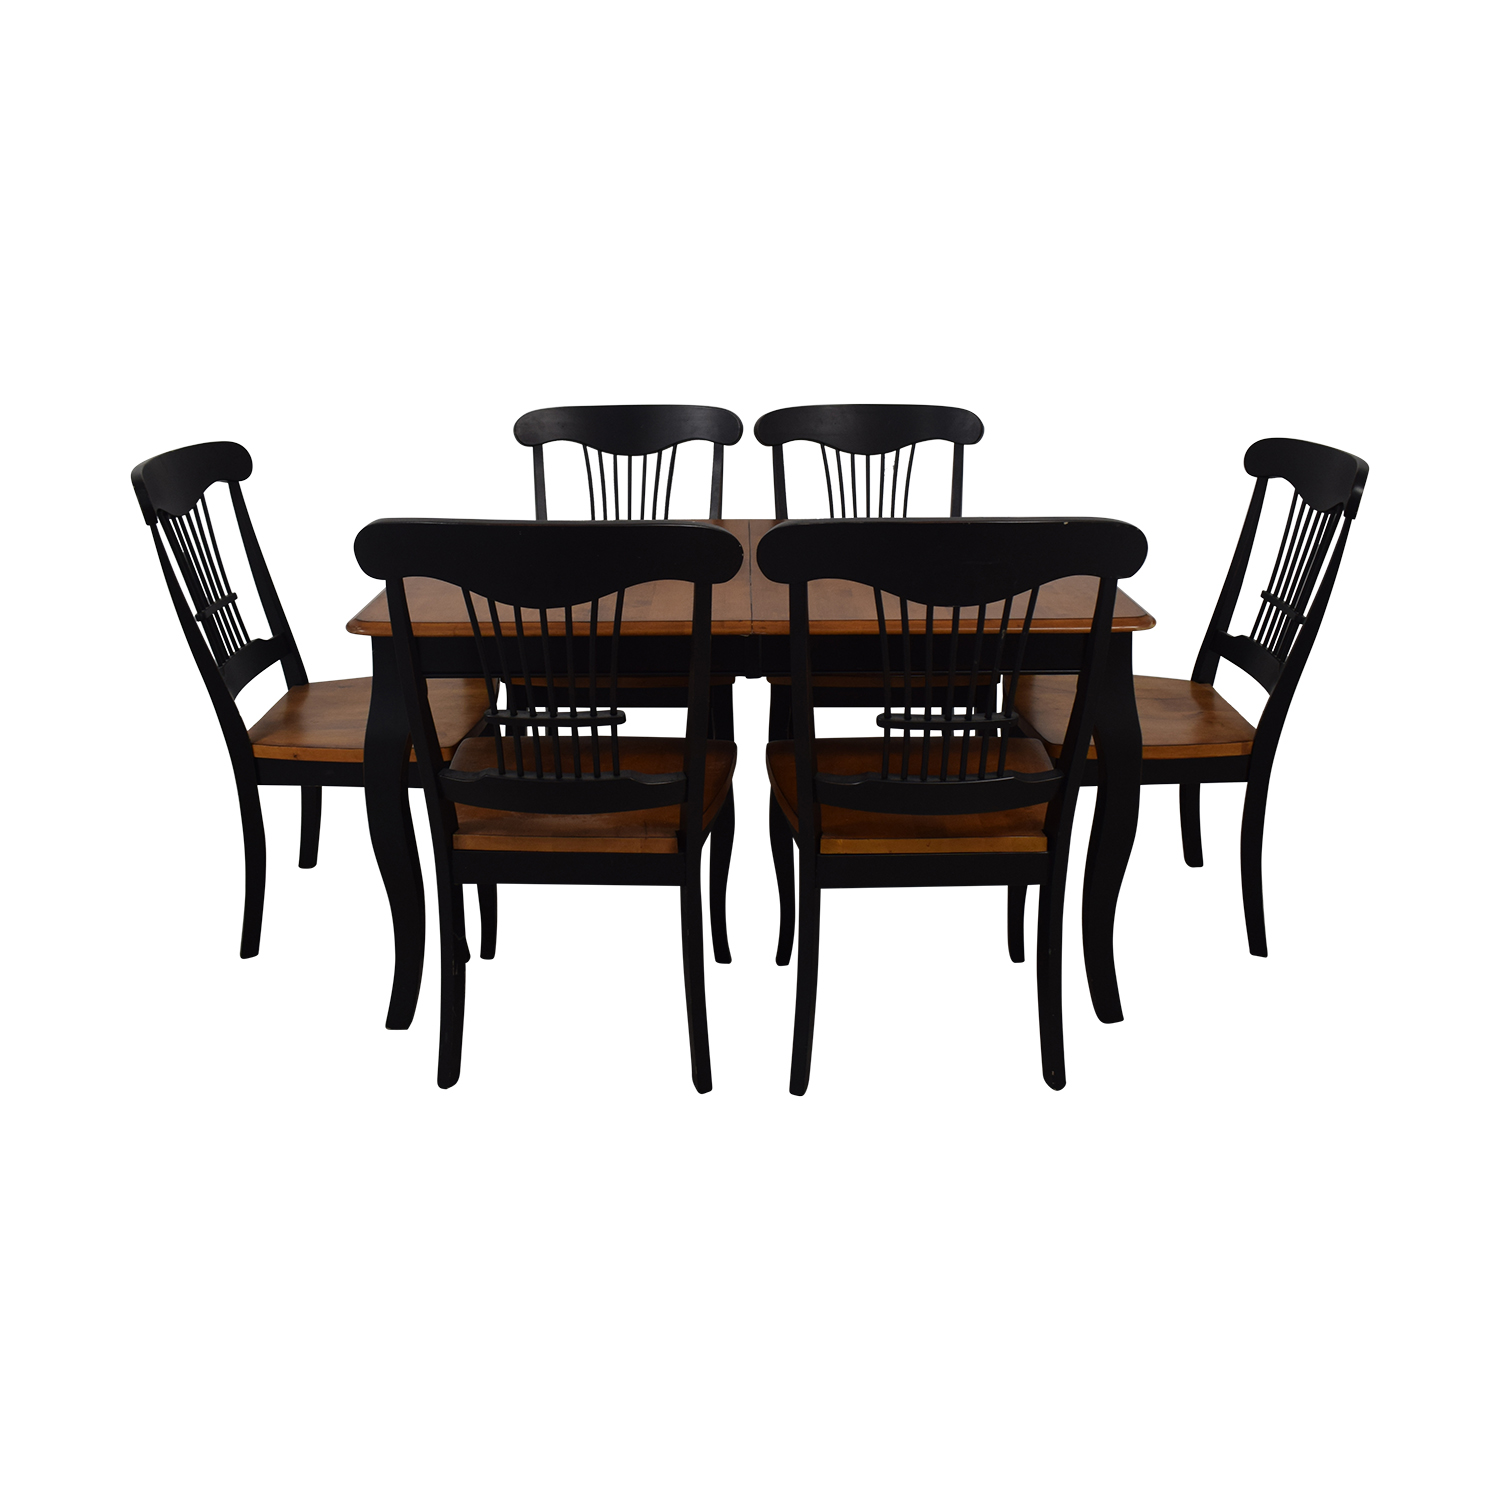 Raymour & Flanigan Raymour & Flanigan Dining Table and Chairs nyc